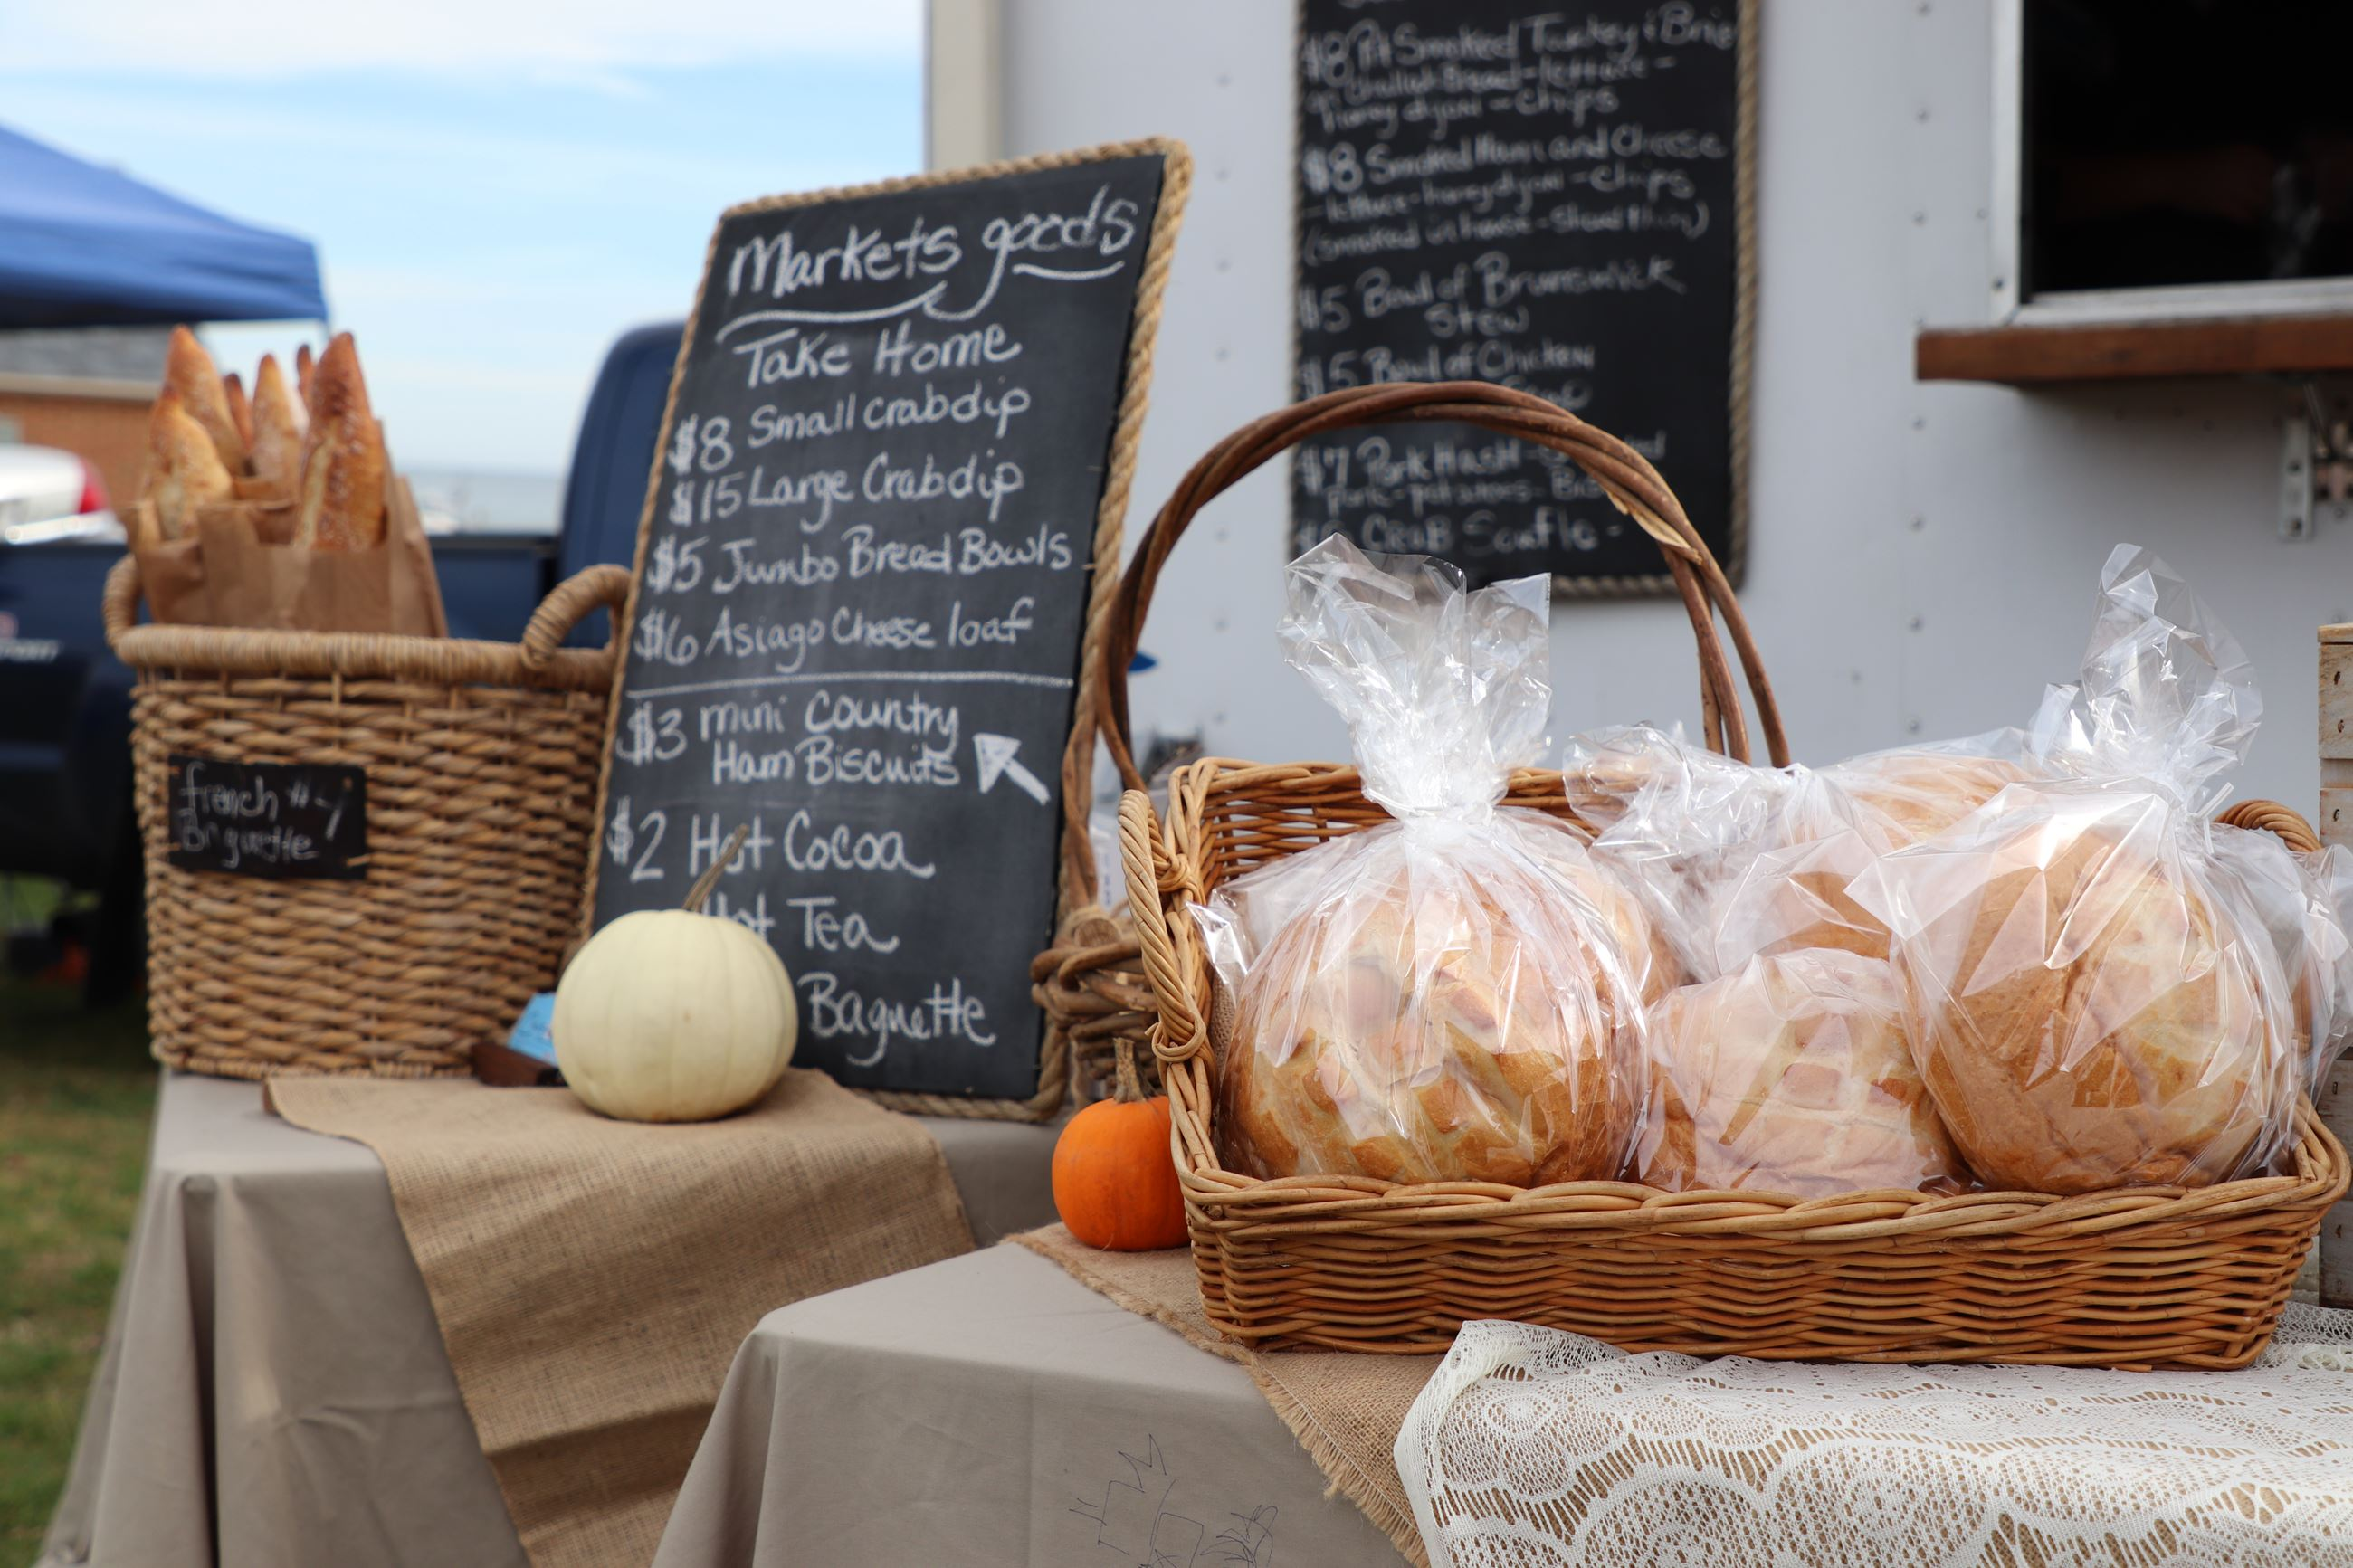 Artisan Bread for Sale